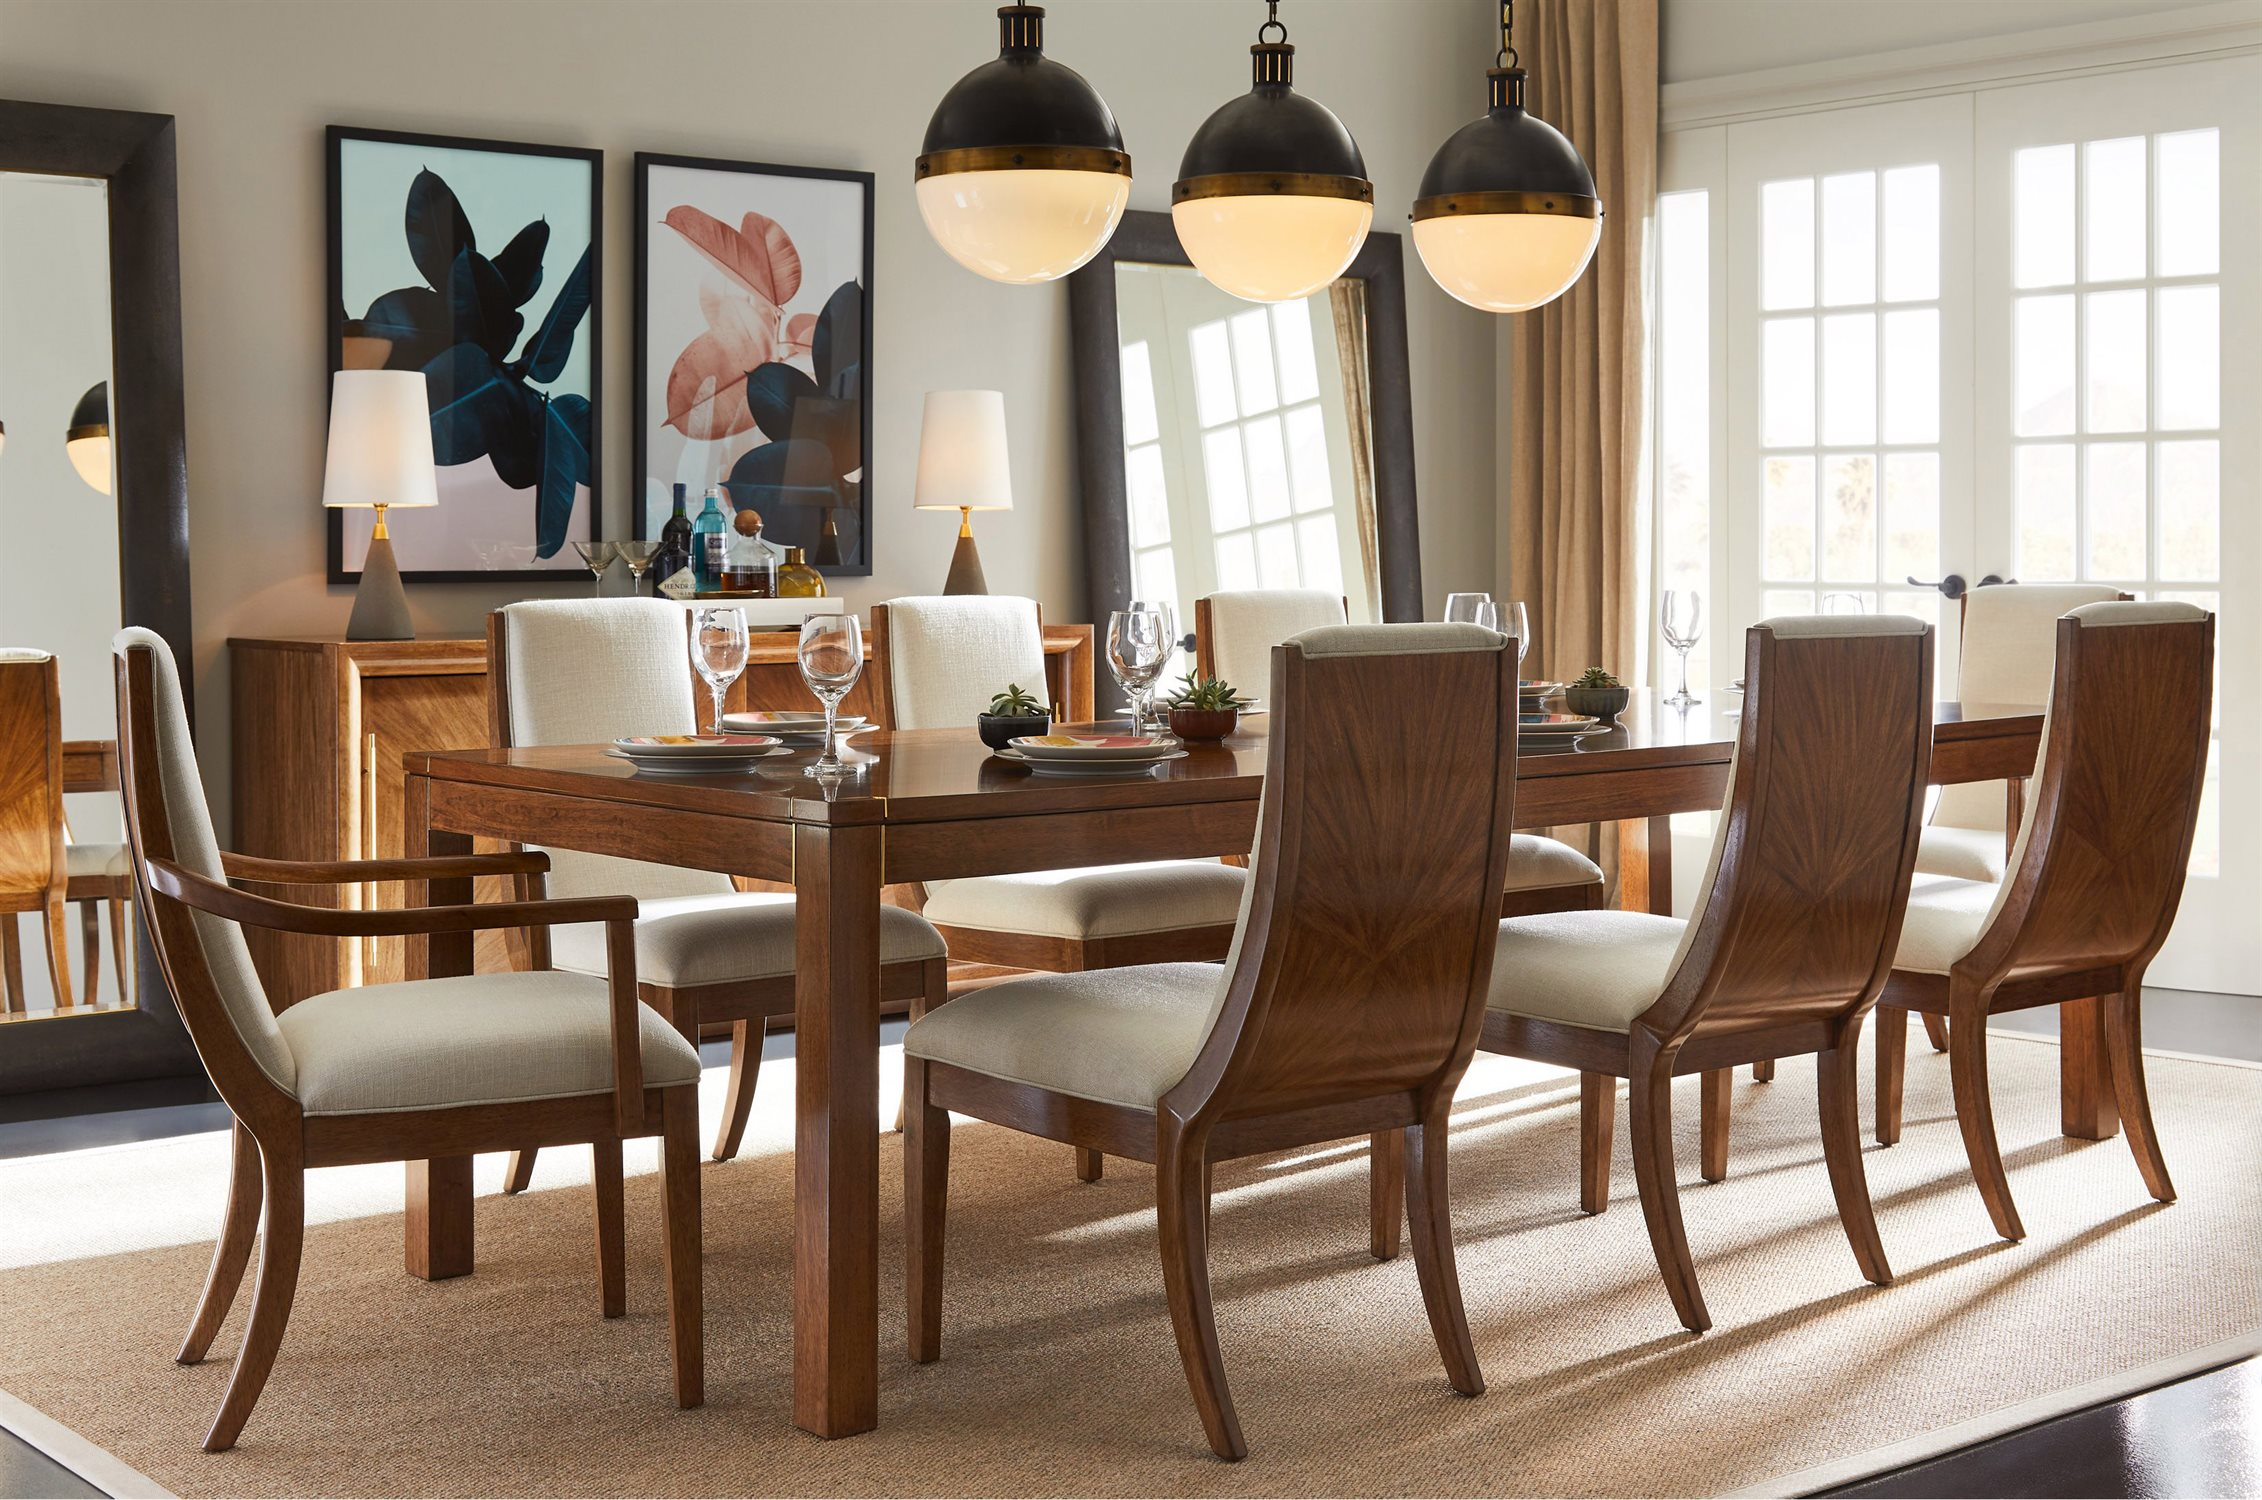 stanley dining room furniture | Stanley Furniture Panavista Goldenrod Dining Room Set ...